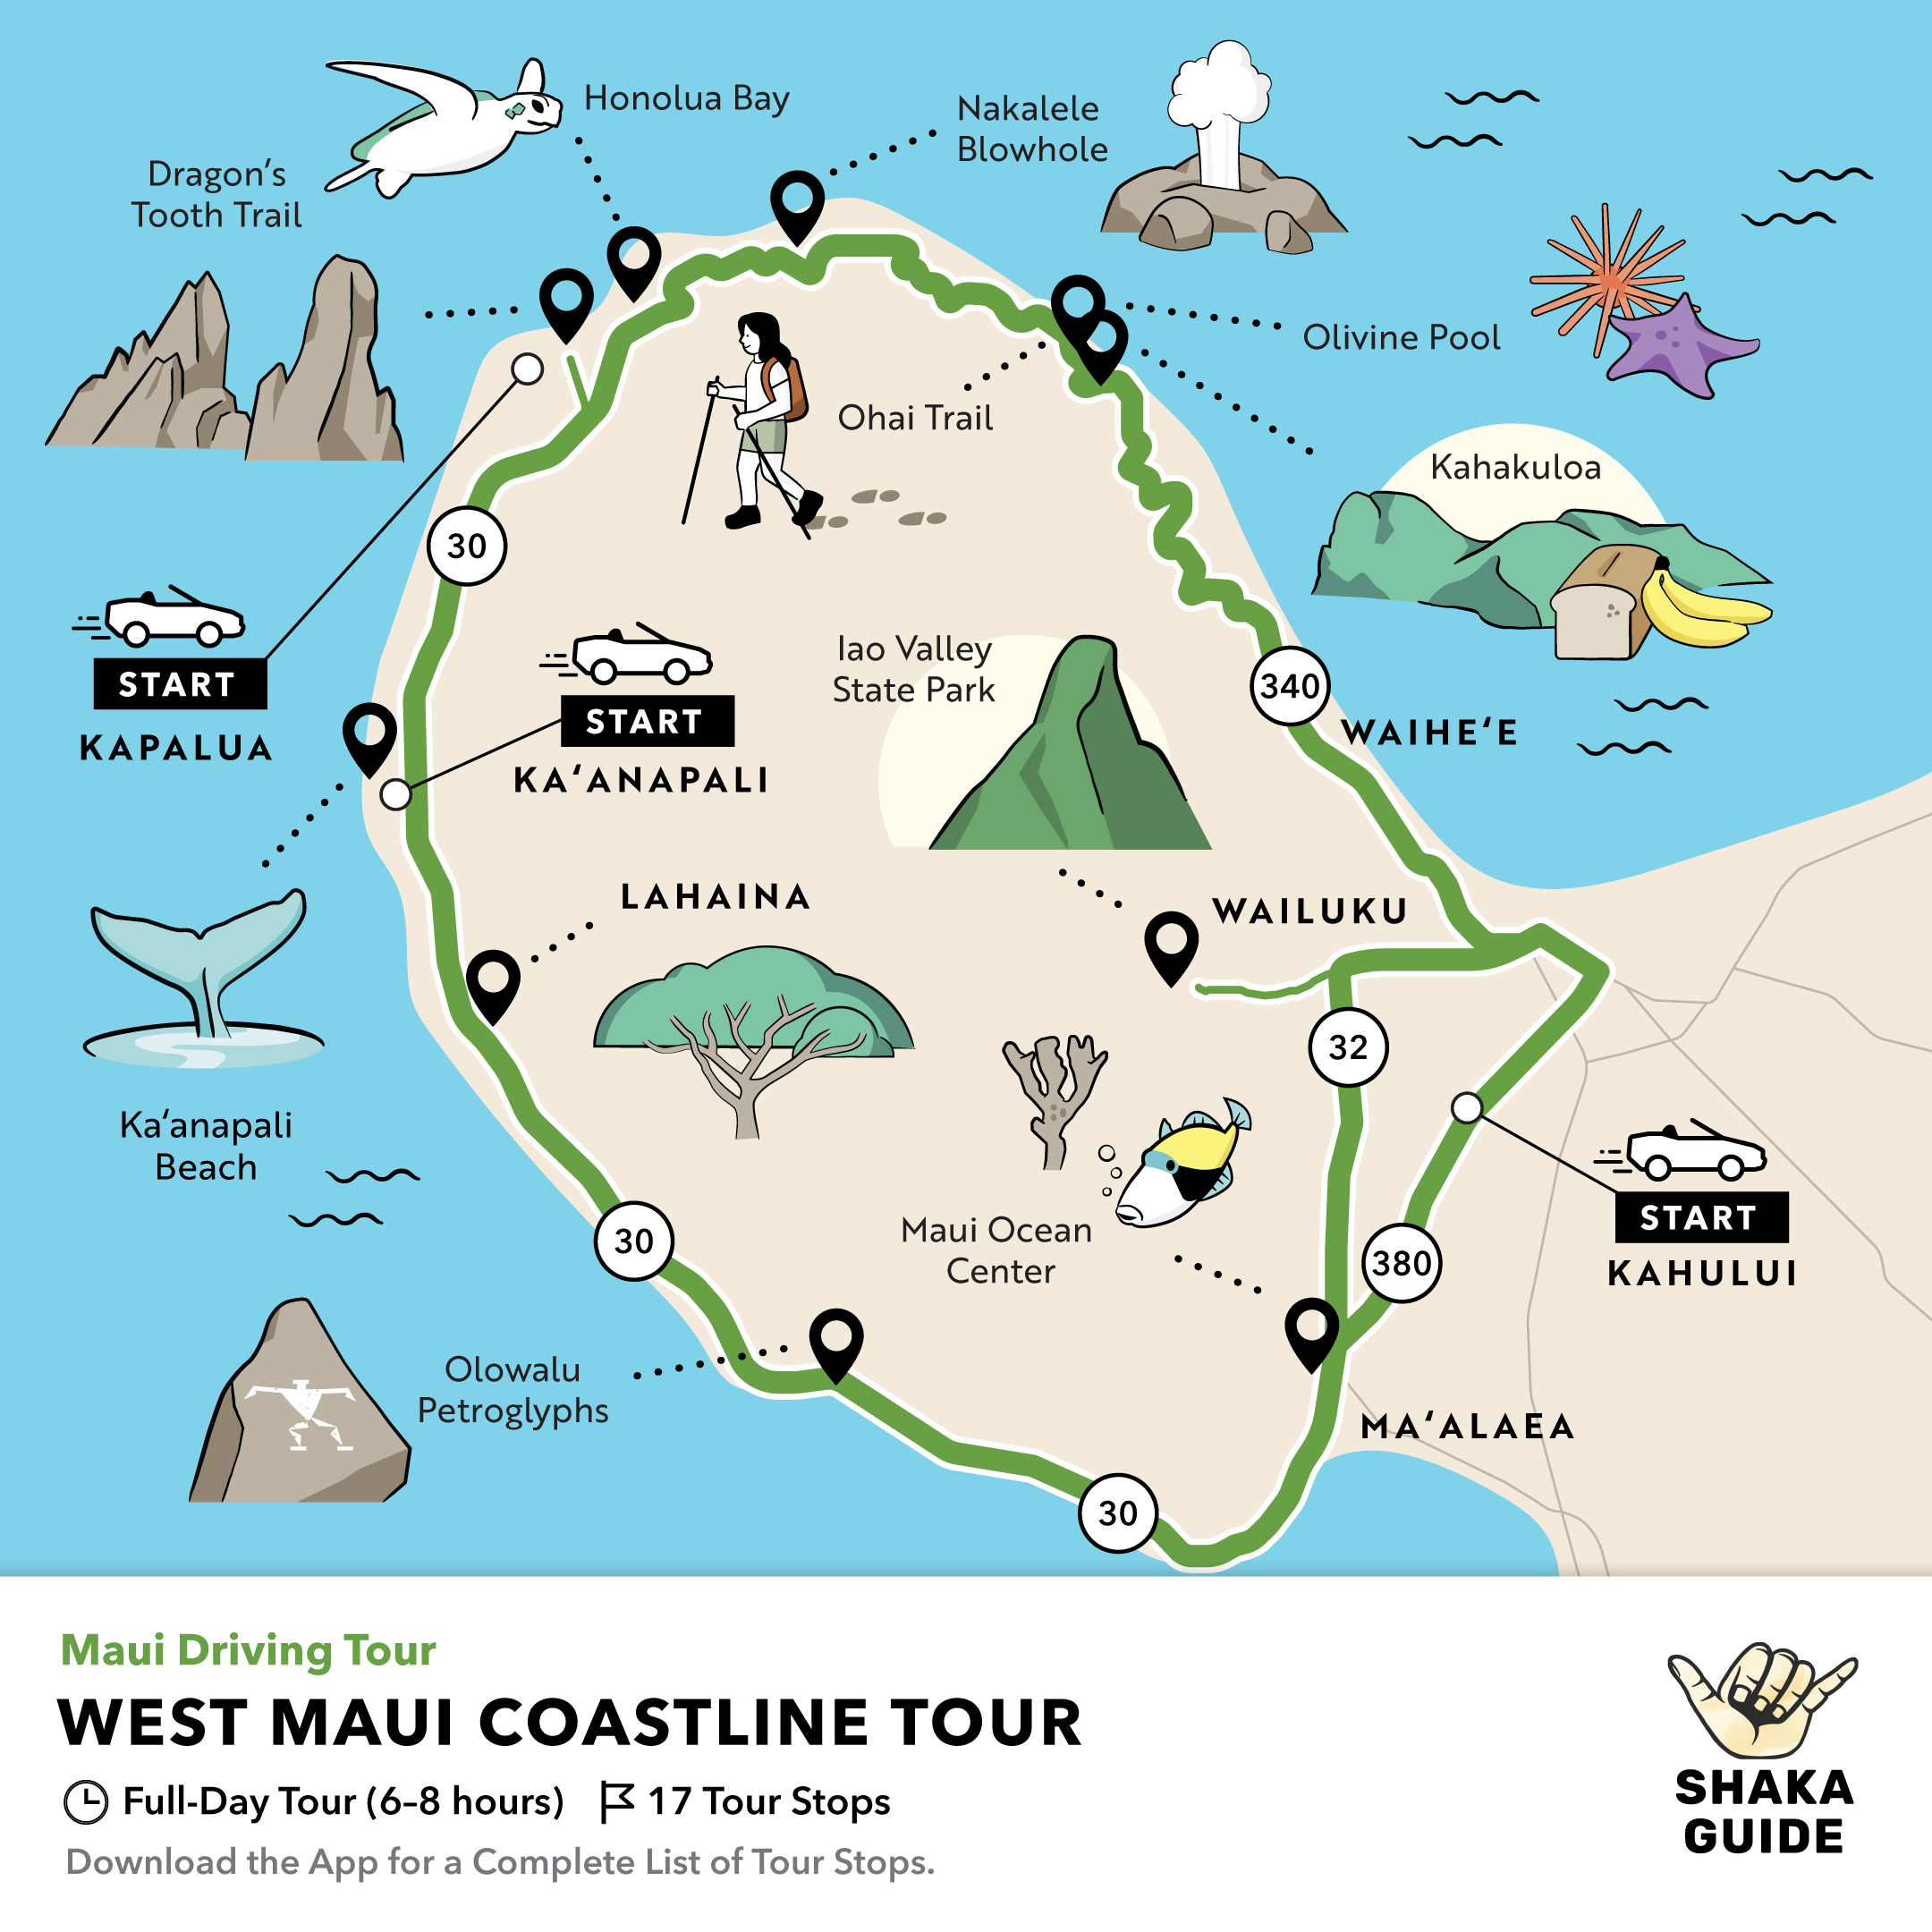 Shaka Guide's West Maui Coastline Tour